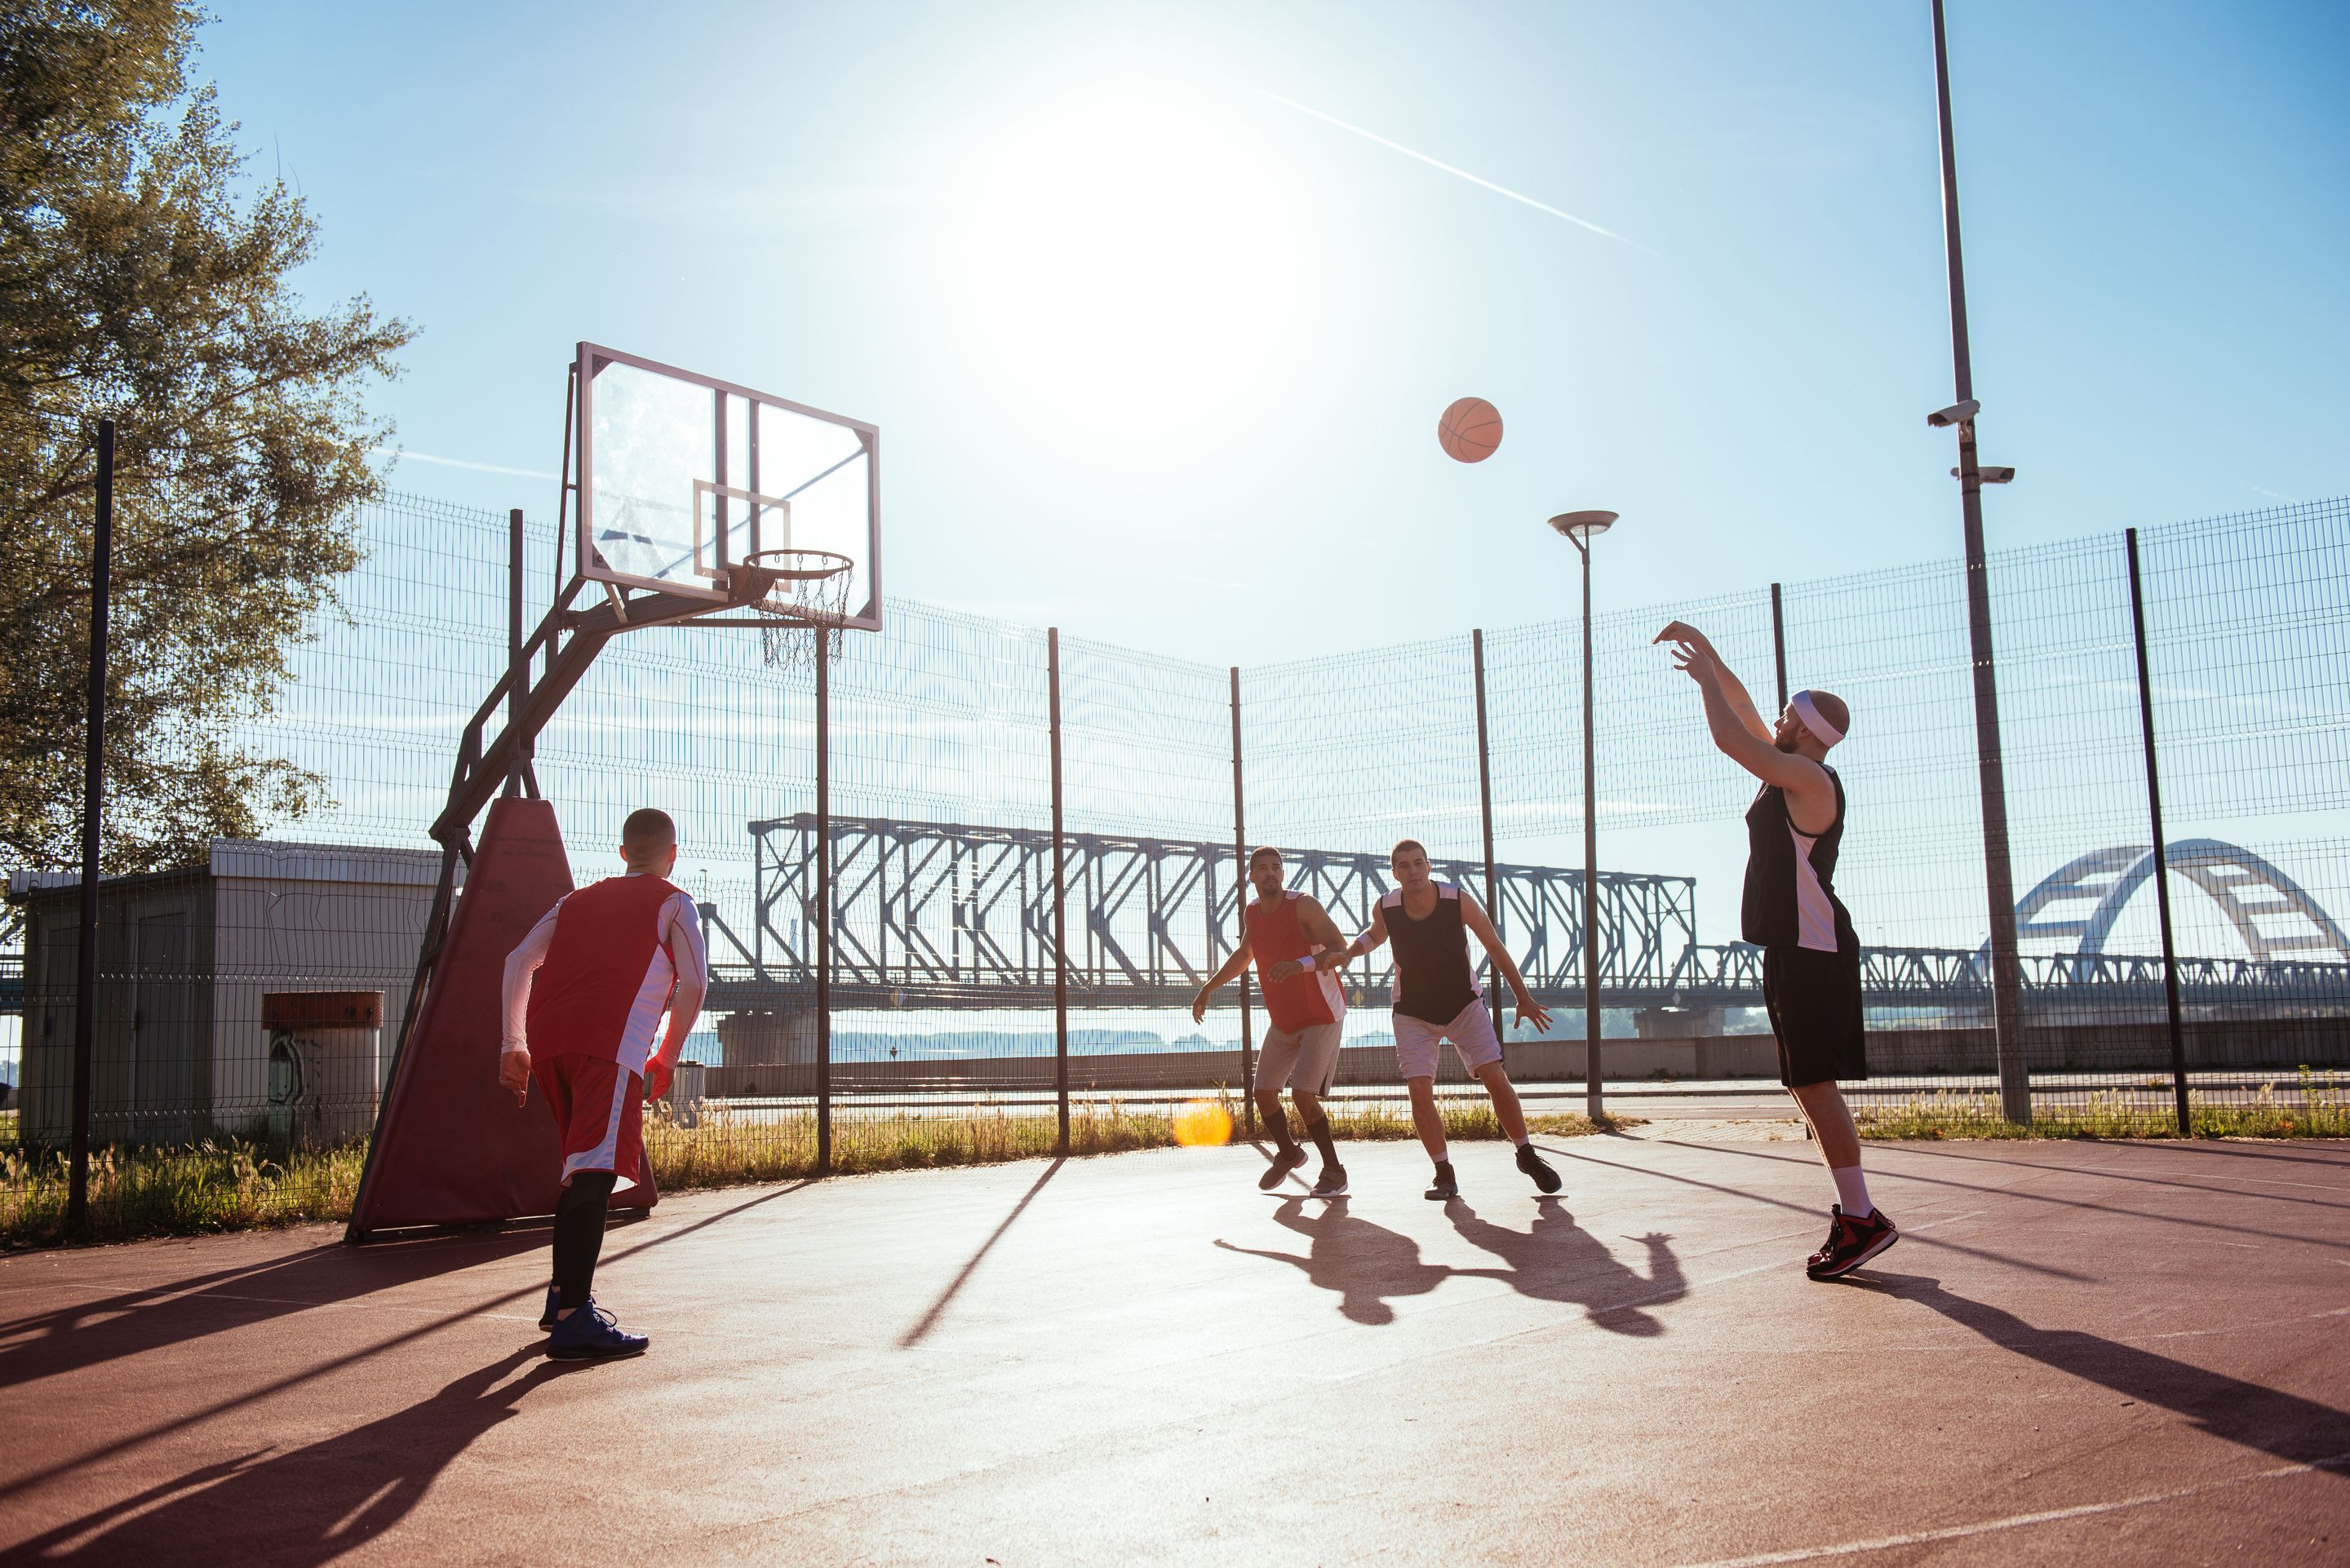 Four men playing basketball. One is shooting a free throw.